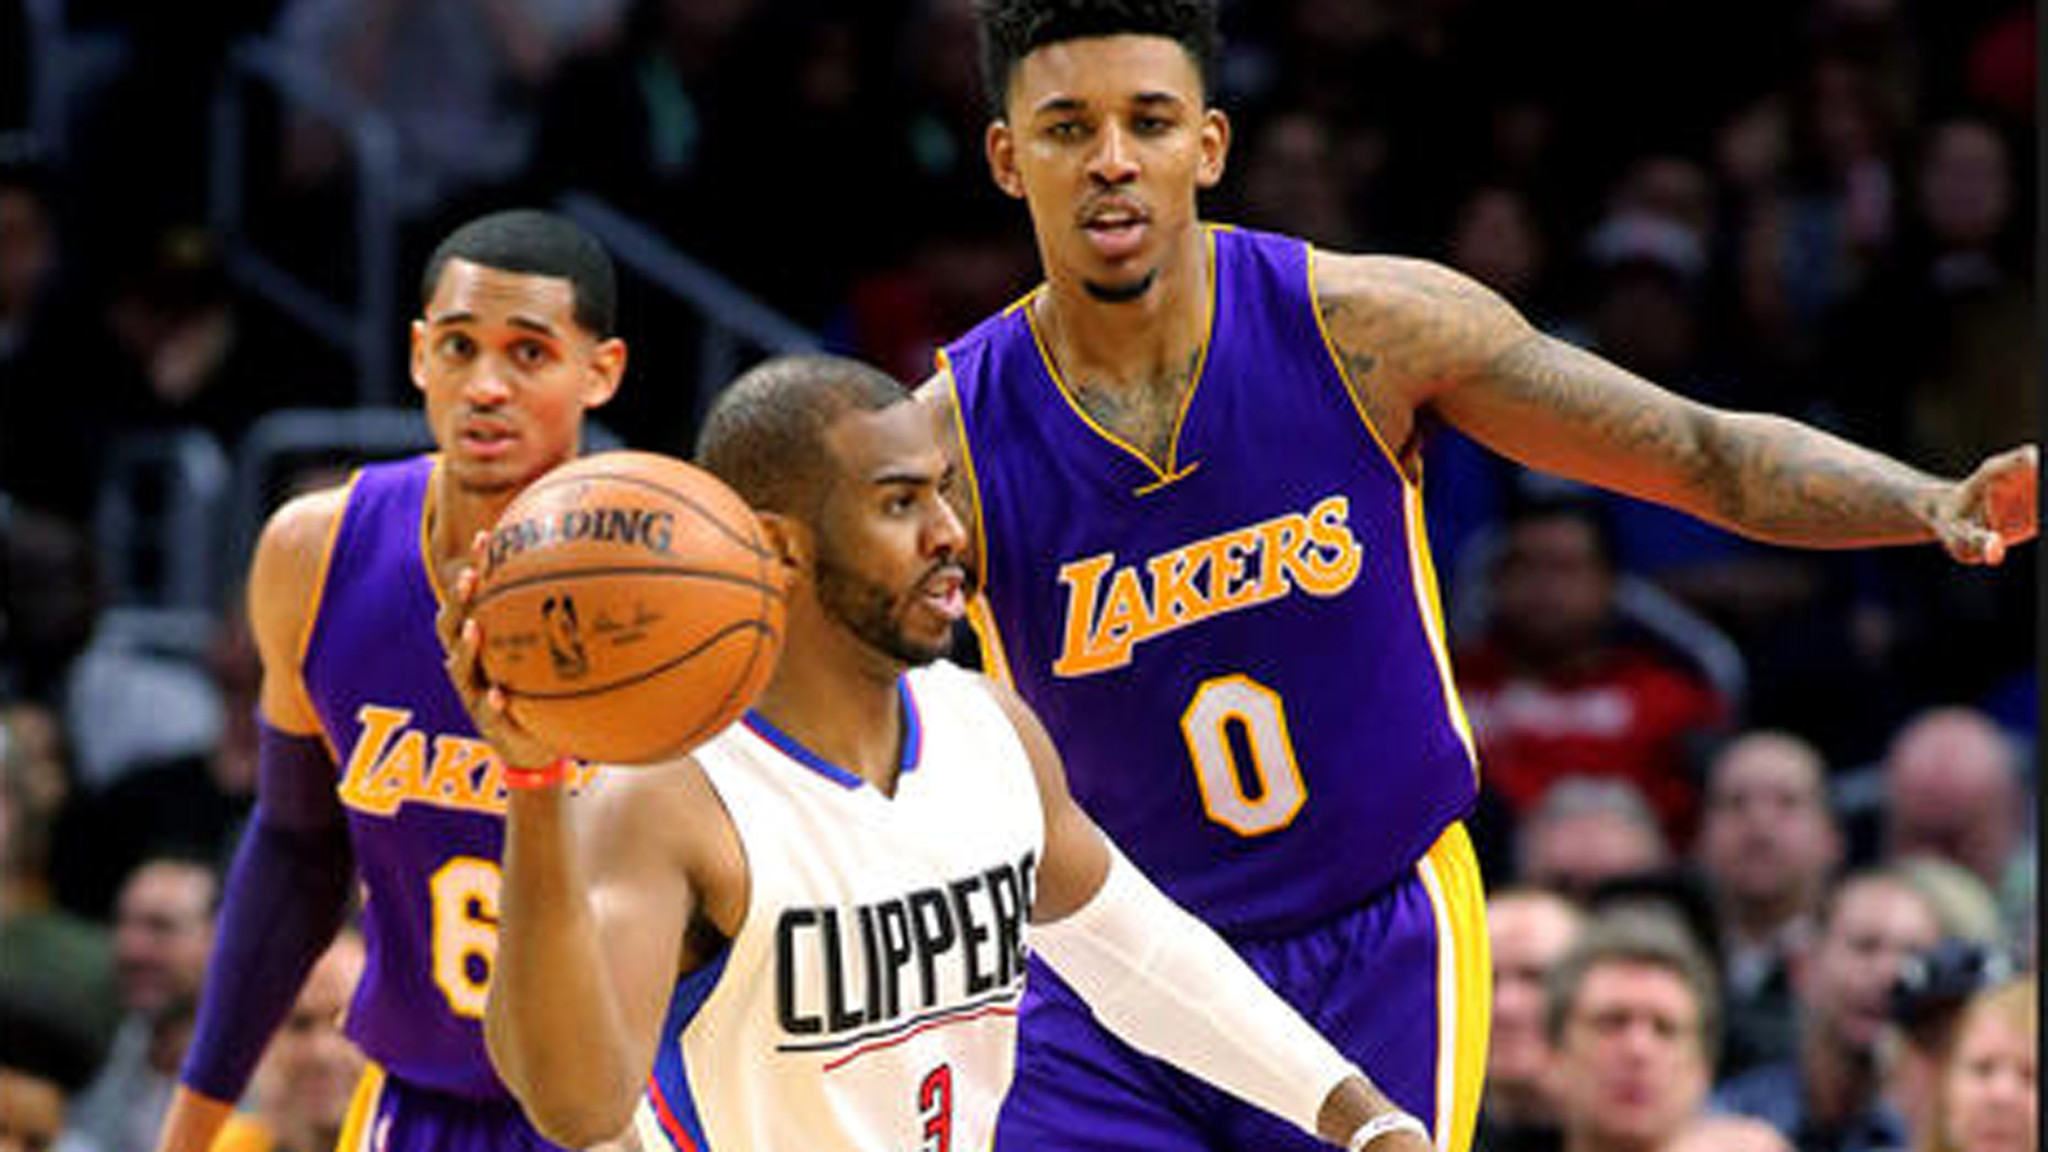 La-sp-lakers-clippers-tonight-20170320